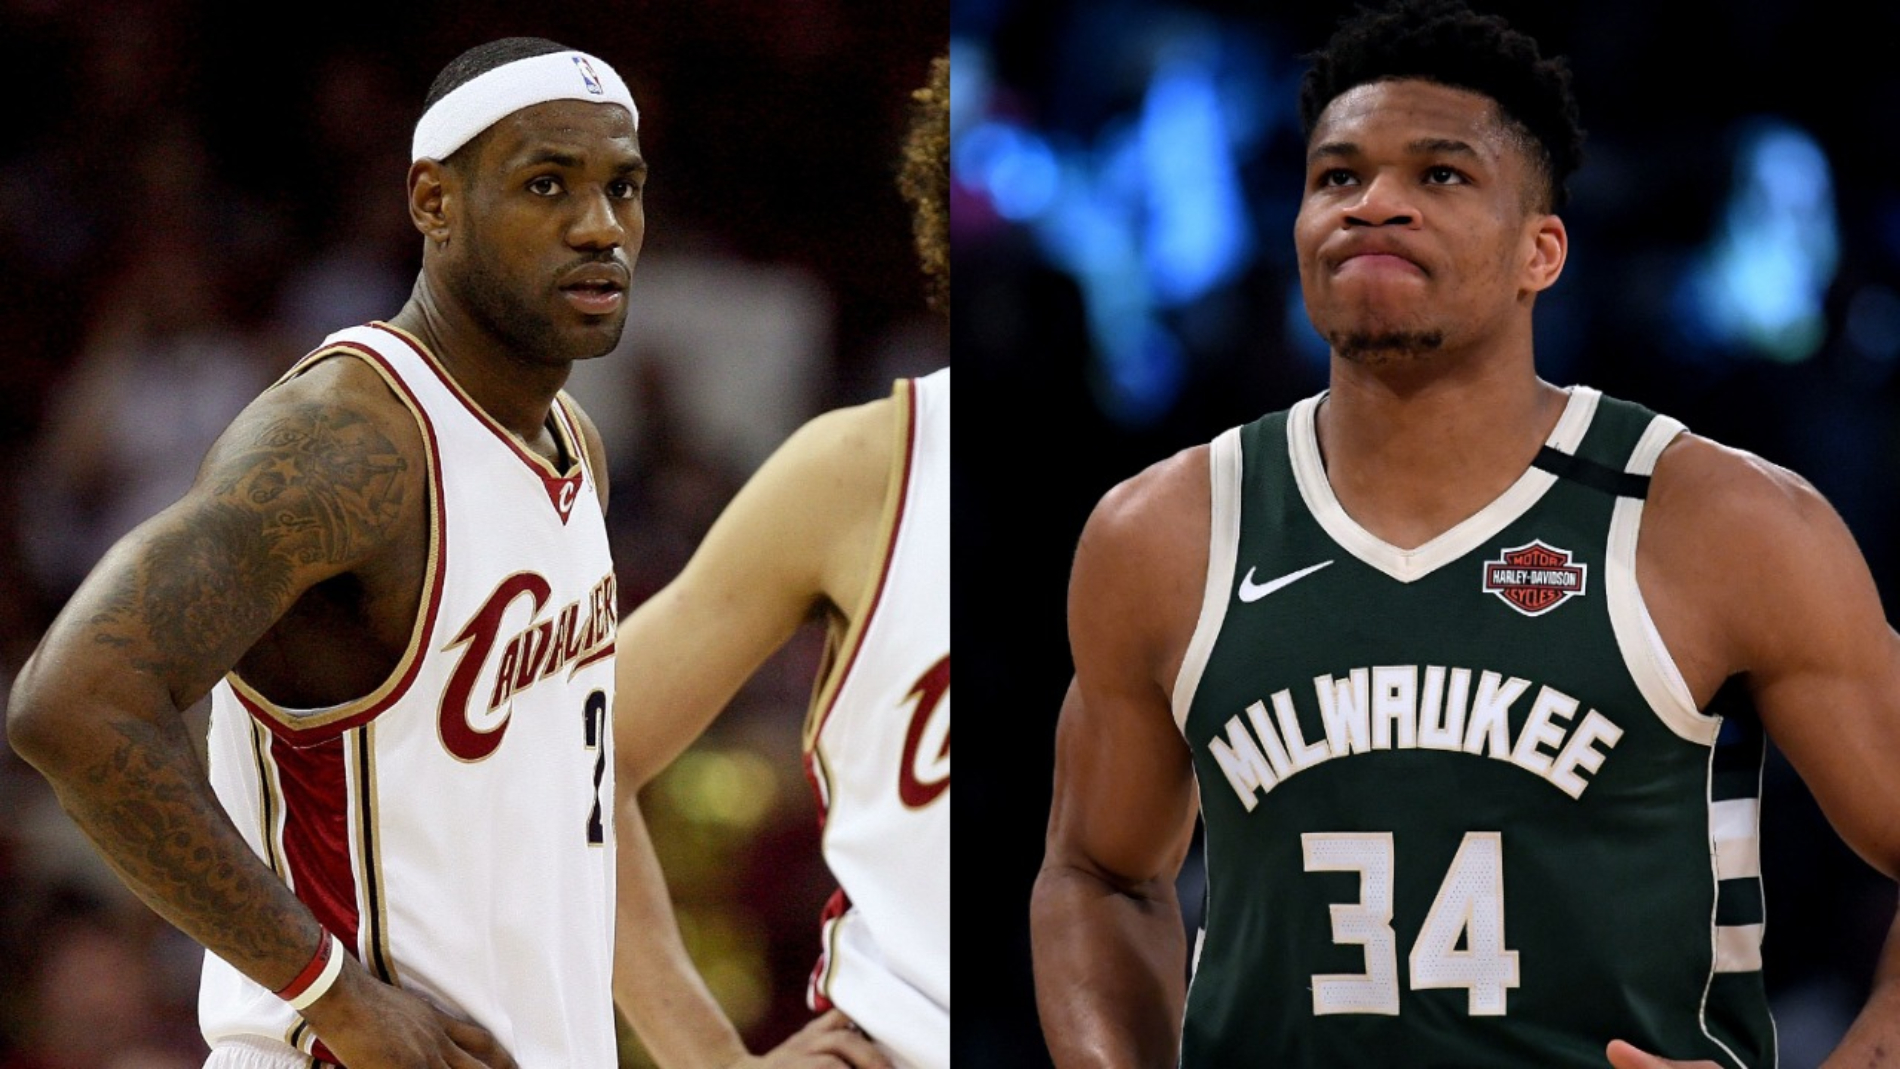 Giannis Antetokounmpo and the Bucks have been a huge a disappointment. Are they proving to be worse than LeBron James' Cavaliers teams?